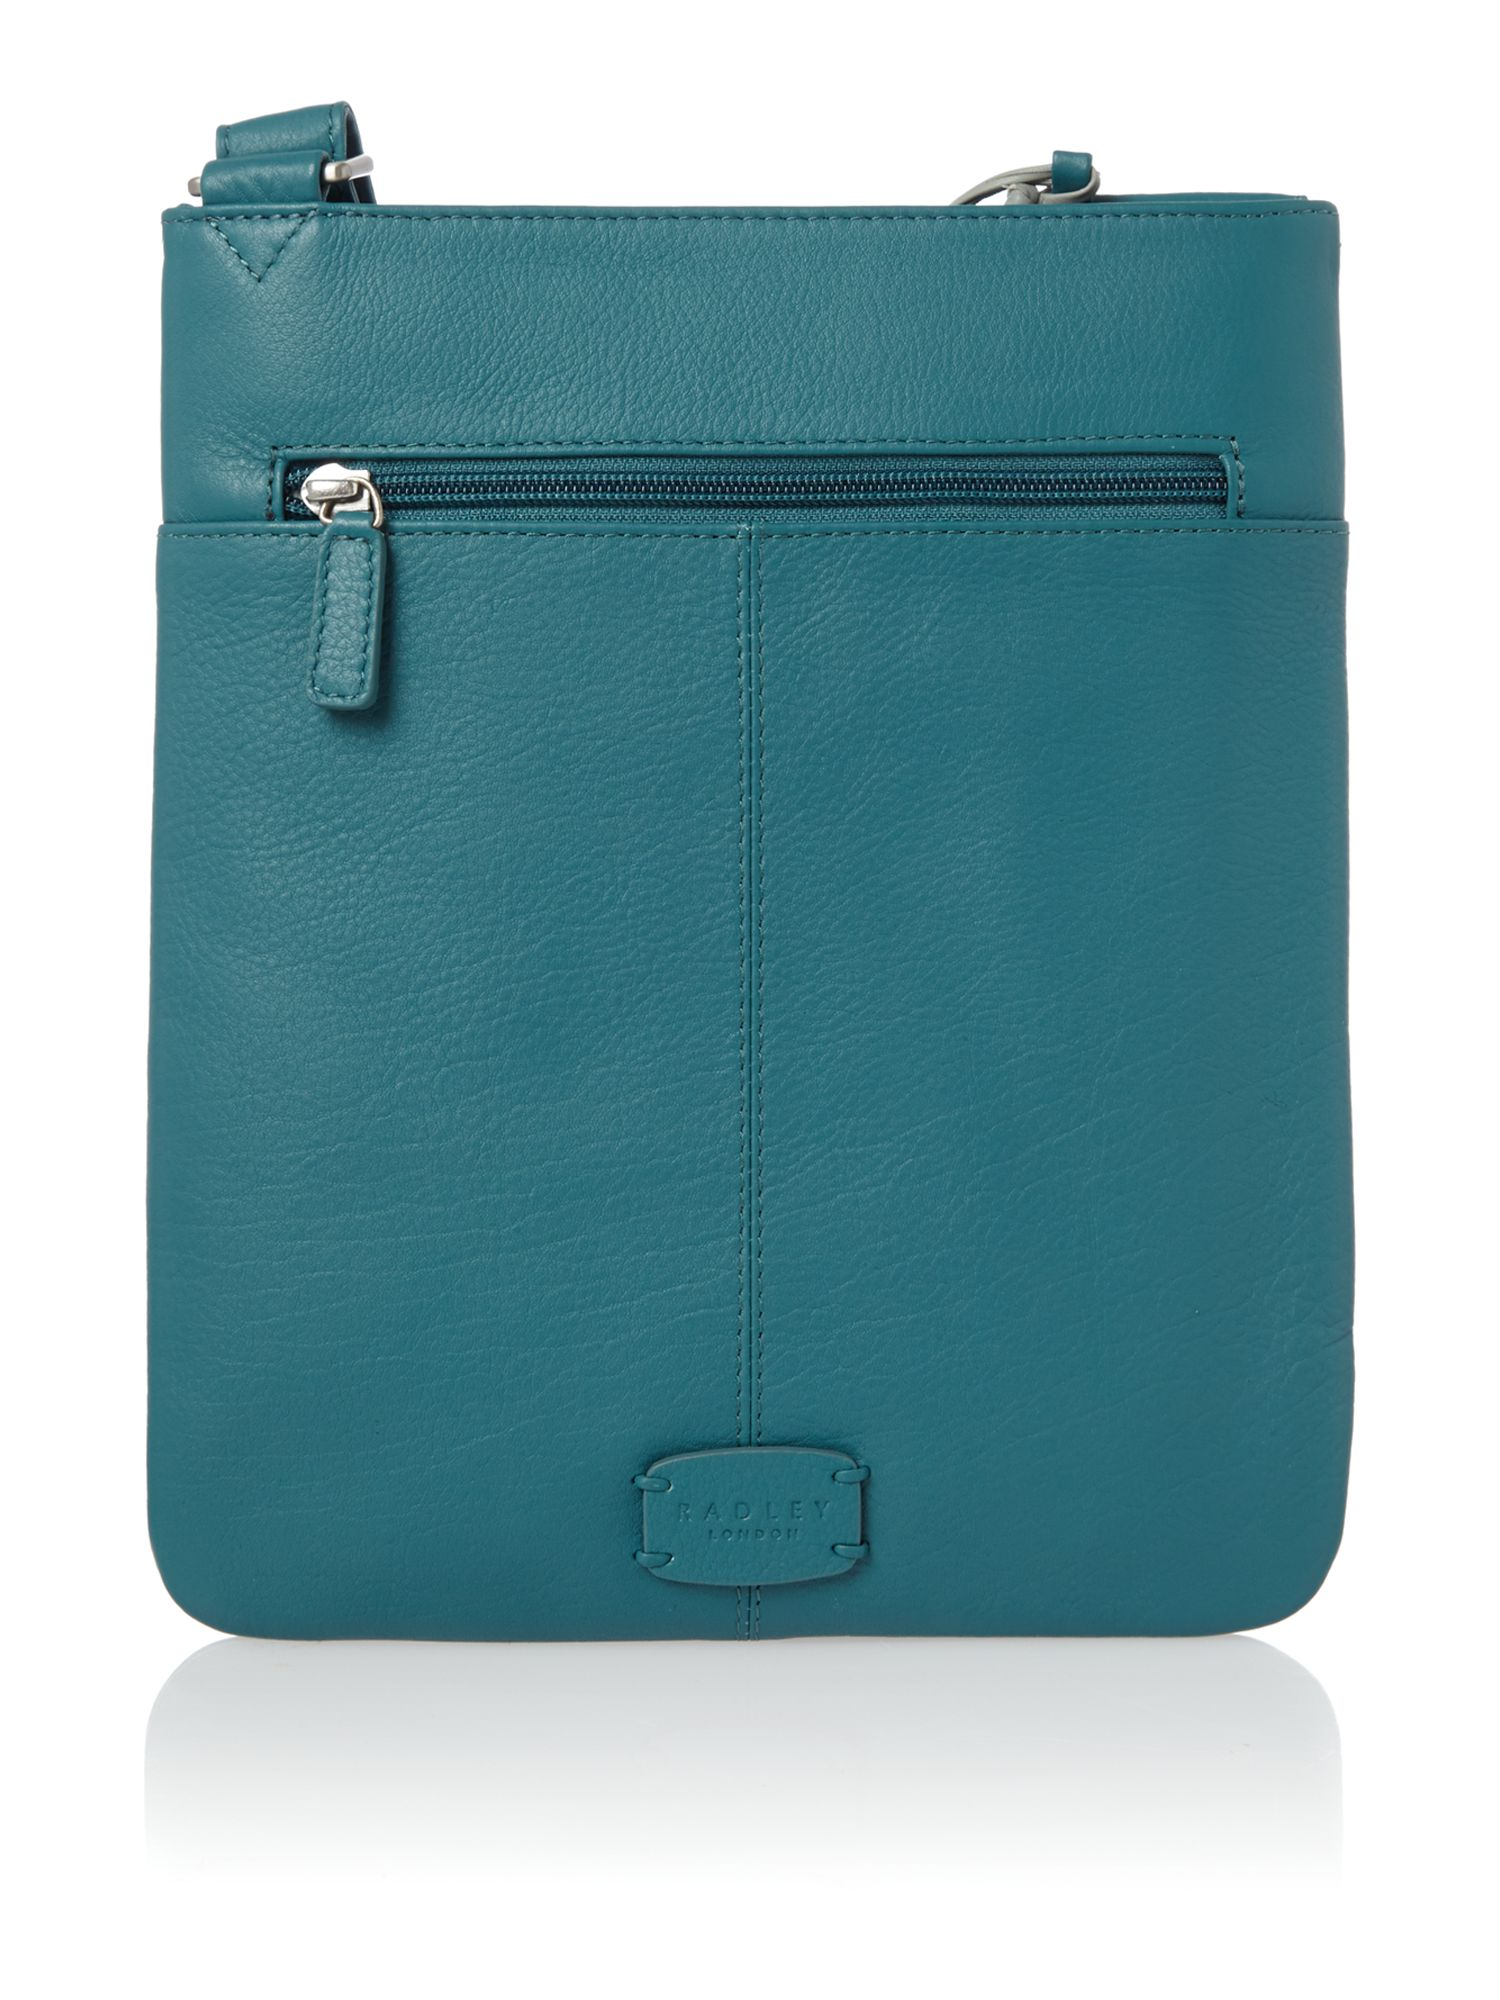 Pocket bag medium ziptop xbody leather blue bag